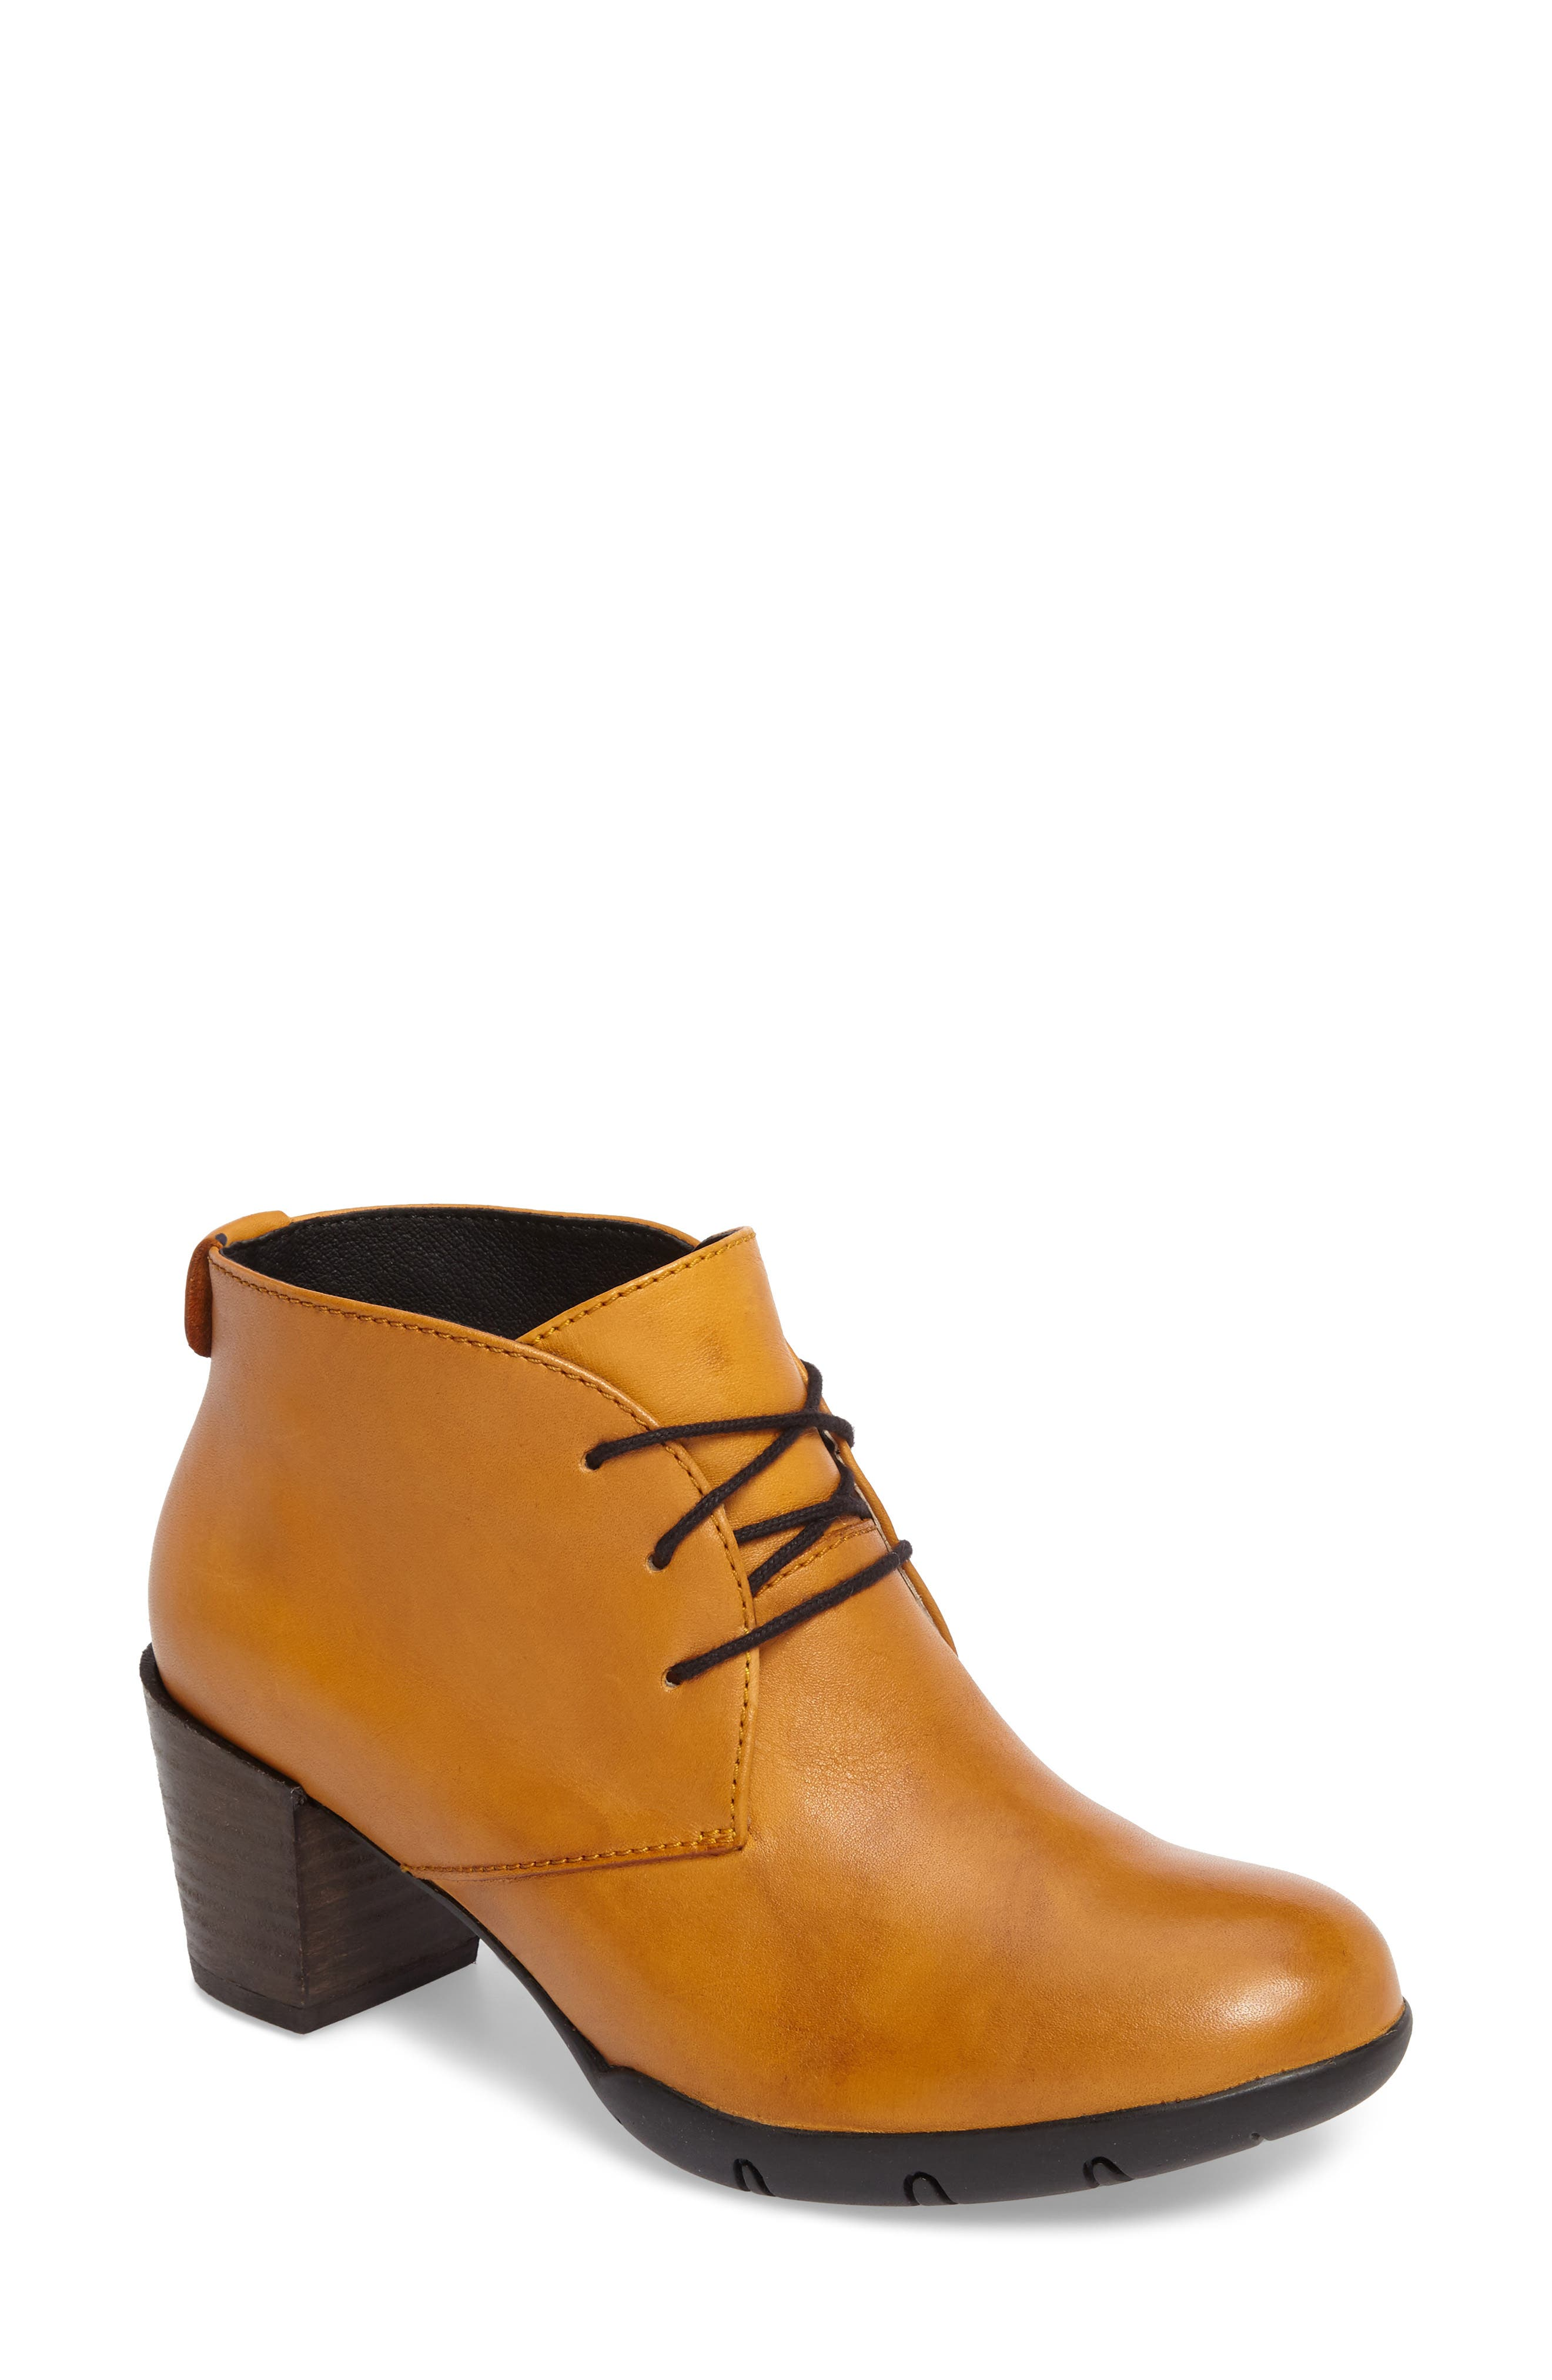 Bighorn Bootie,                             Main thumbnail 1, color,                             Curry Leather